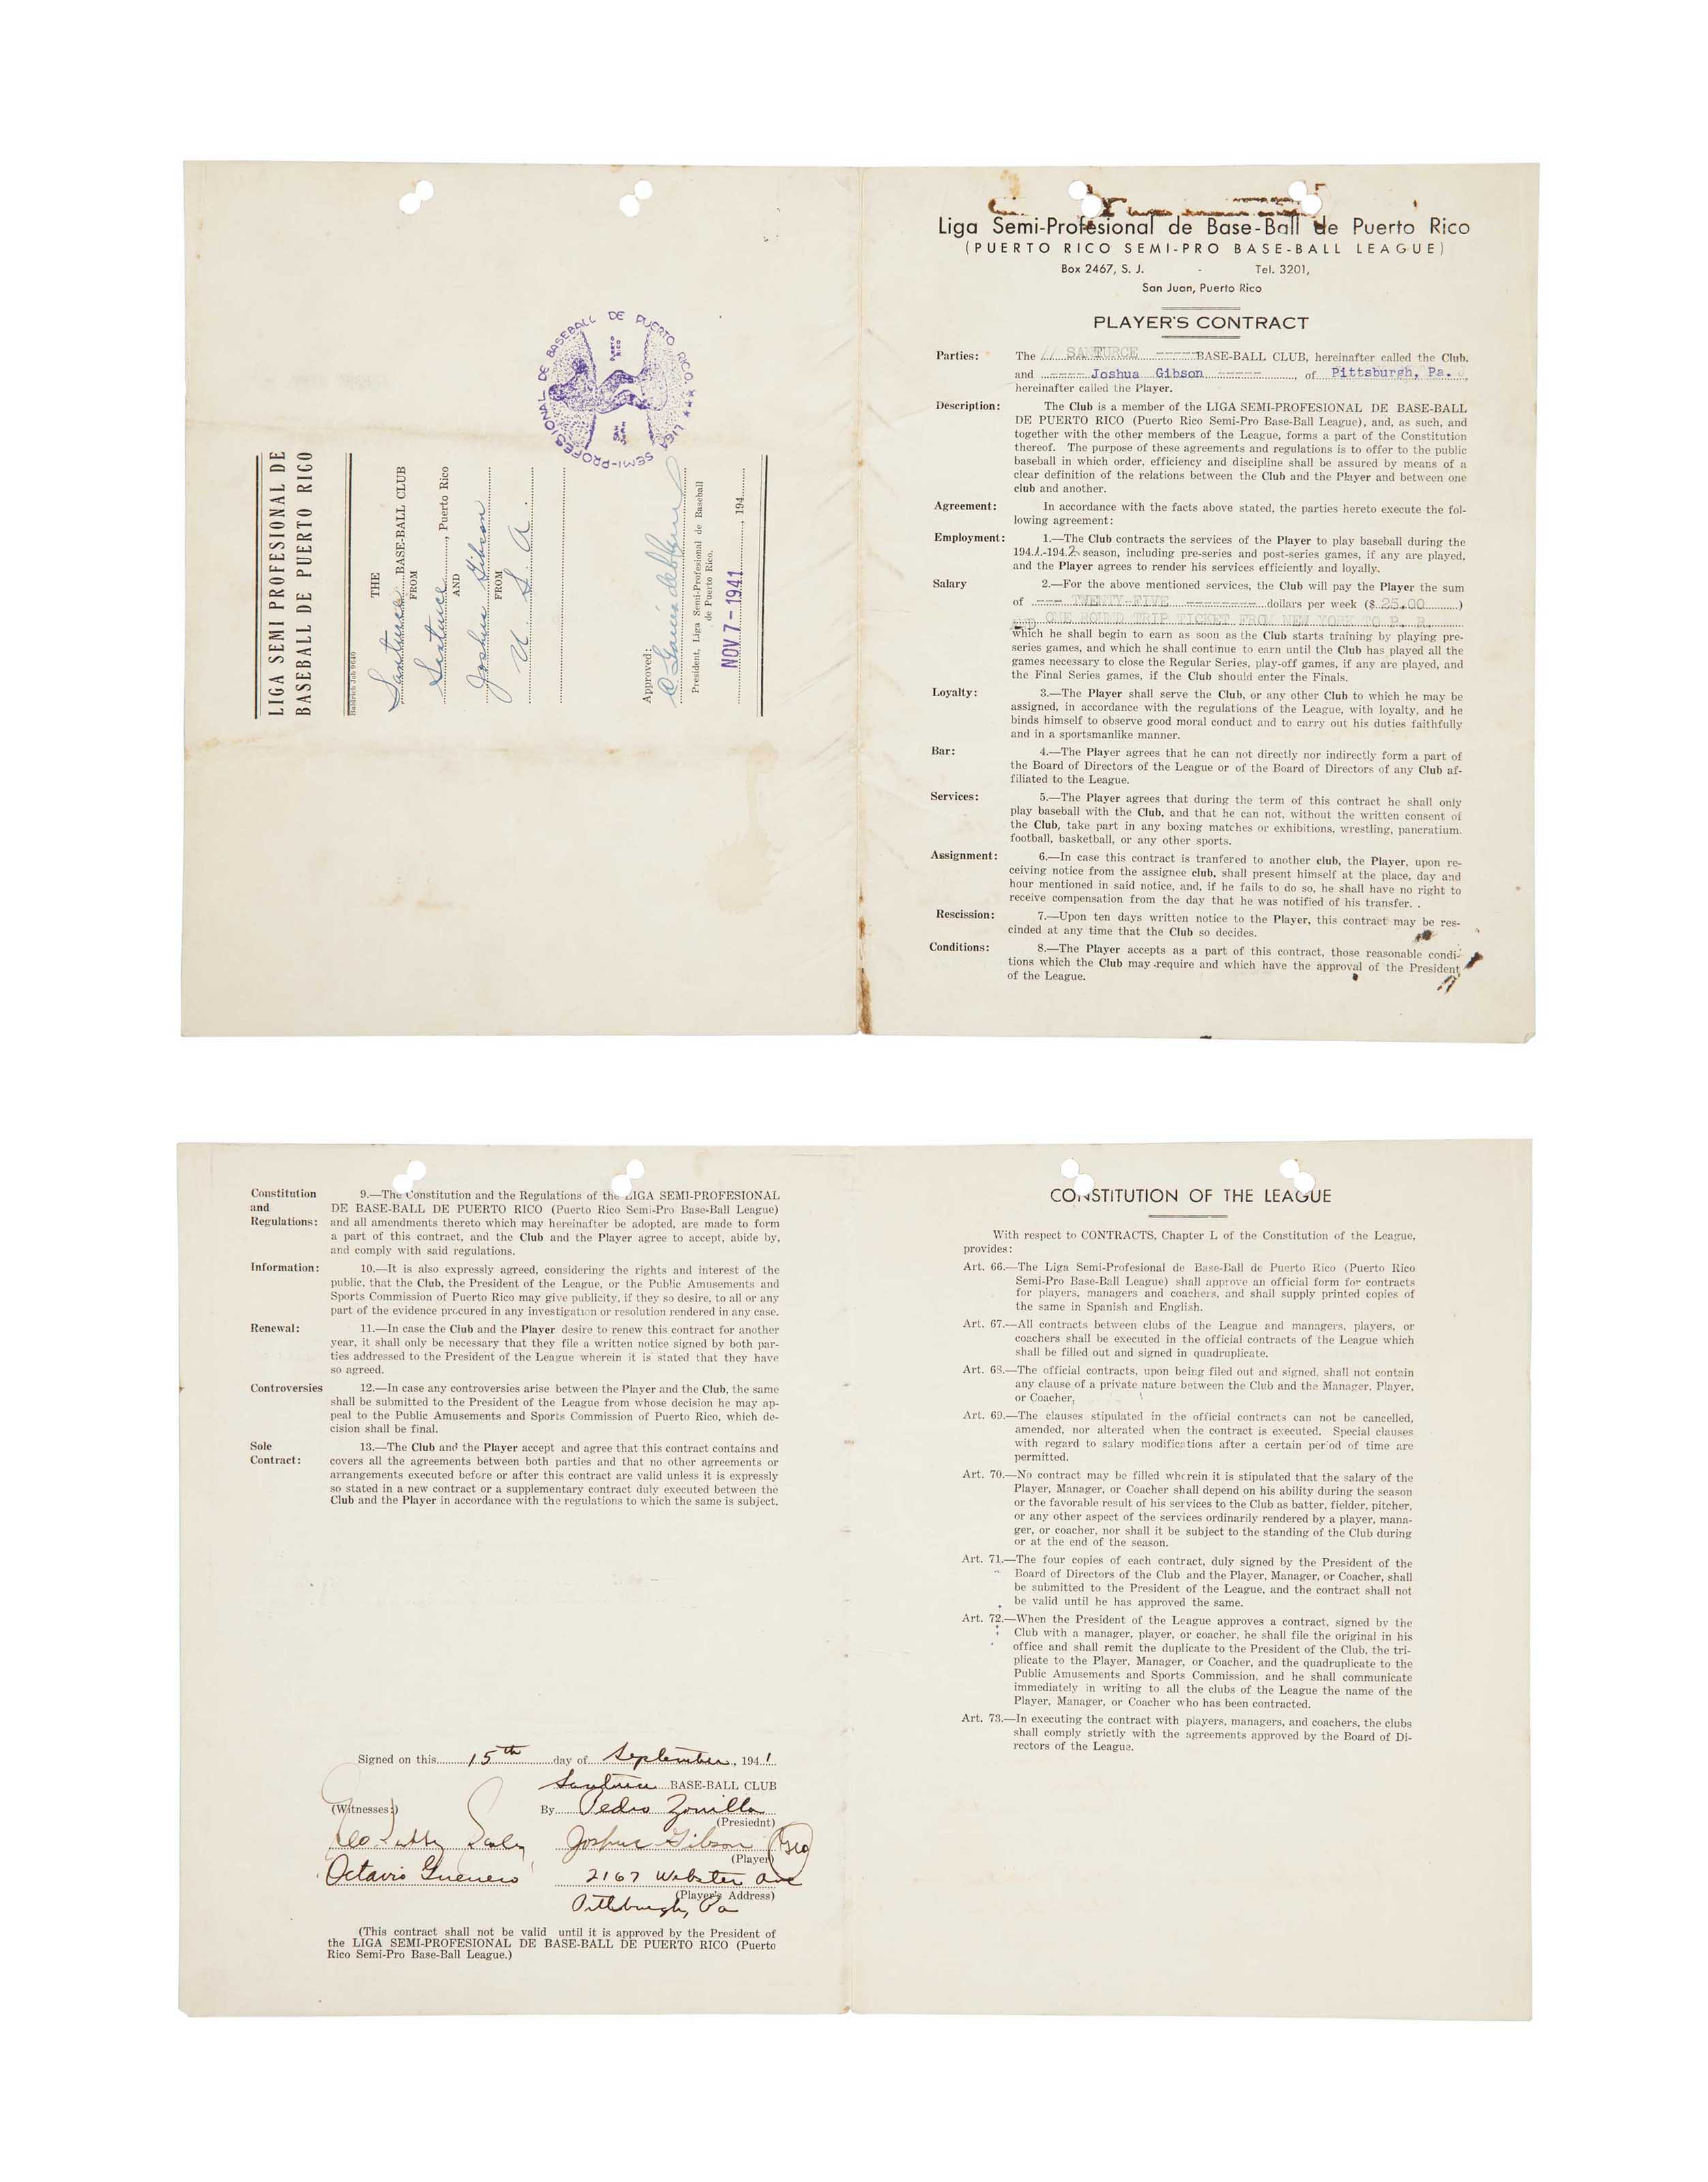 JOSH GIBSON SIGNED CONTRACT